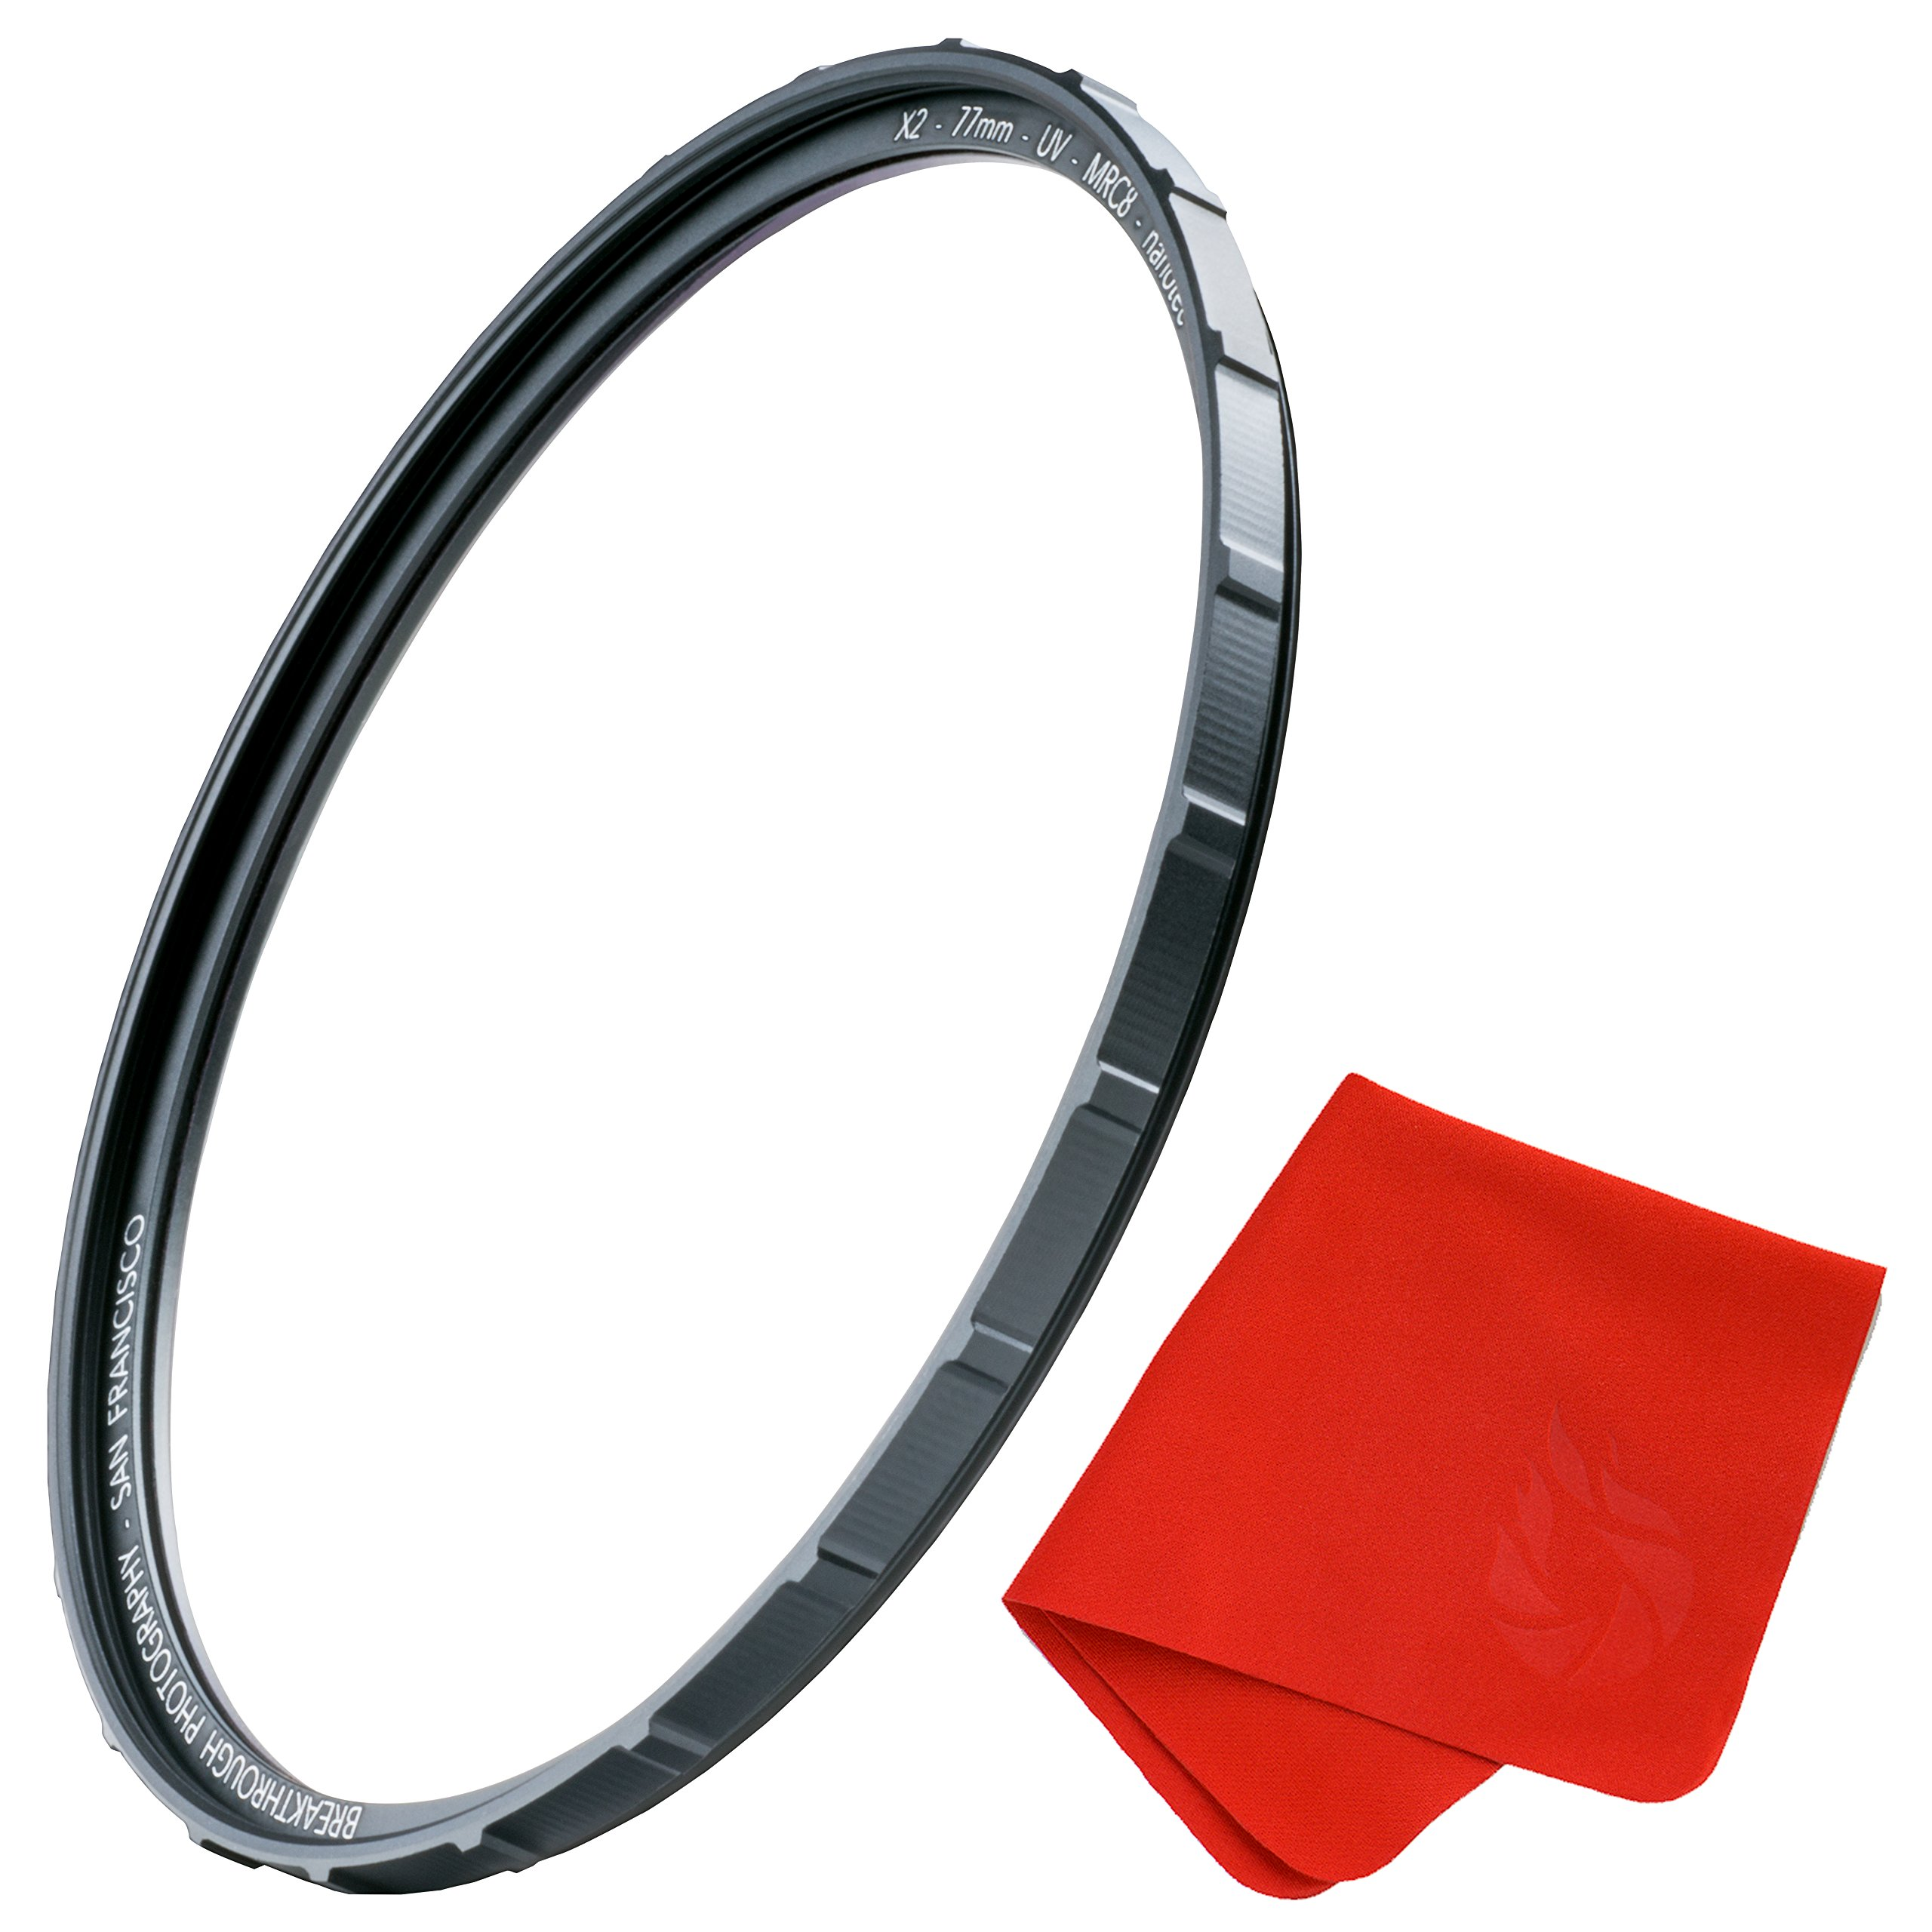 77mm X2 UV Filter for Camera Lenses - UV Protection Photography Filter with Lens Cloth - MRC8, Nanotec Coatings, Ultra-Slim, Traction Frame, Weather-Sealed by Breakthrough Photography by Breakthrough Photography